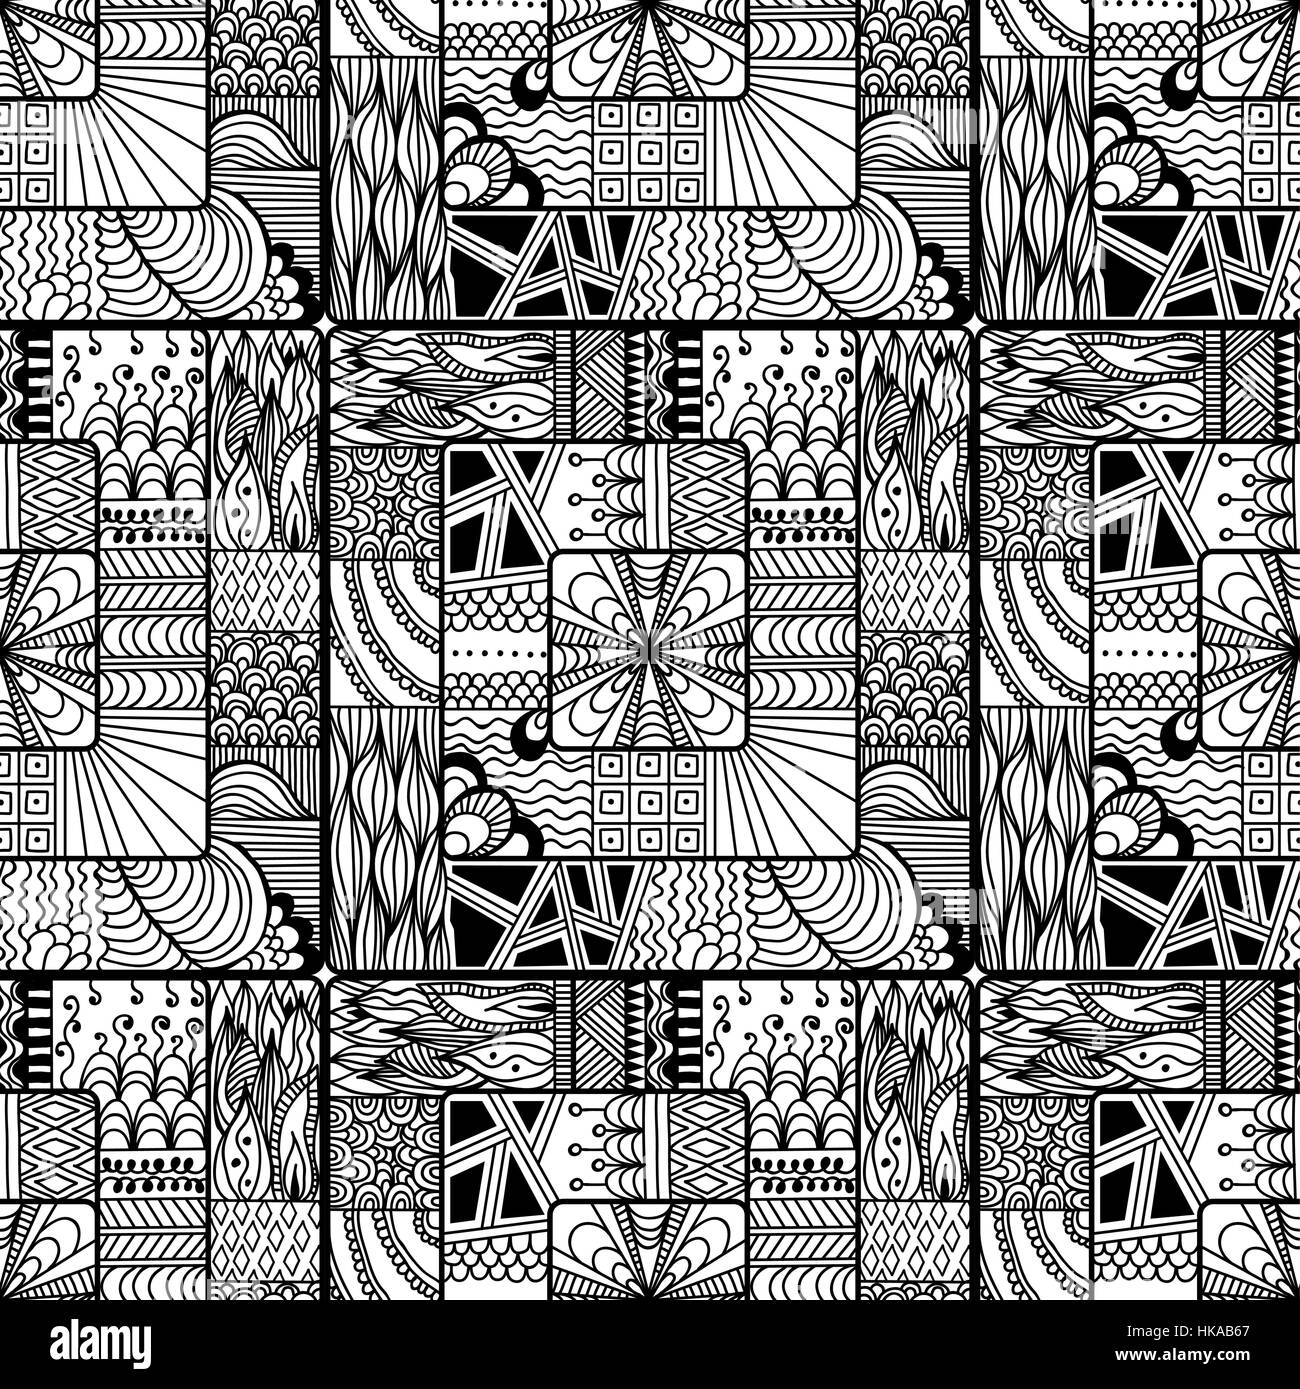 square zentangle seamless pattern vector illustration for art stock vector art illustration. Black Bedroom Furniture Sets. Home Design Ideas